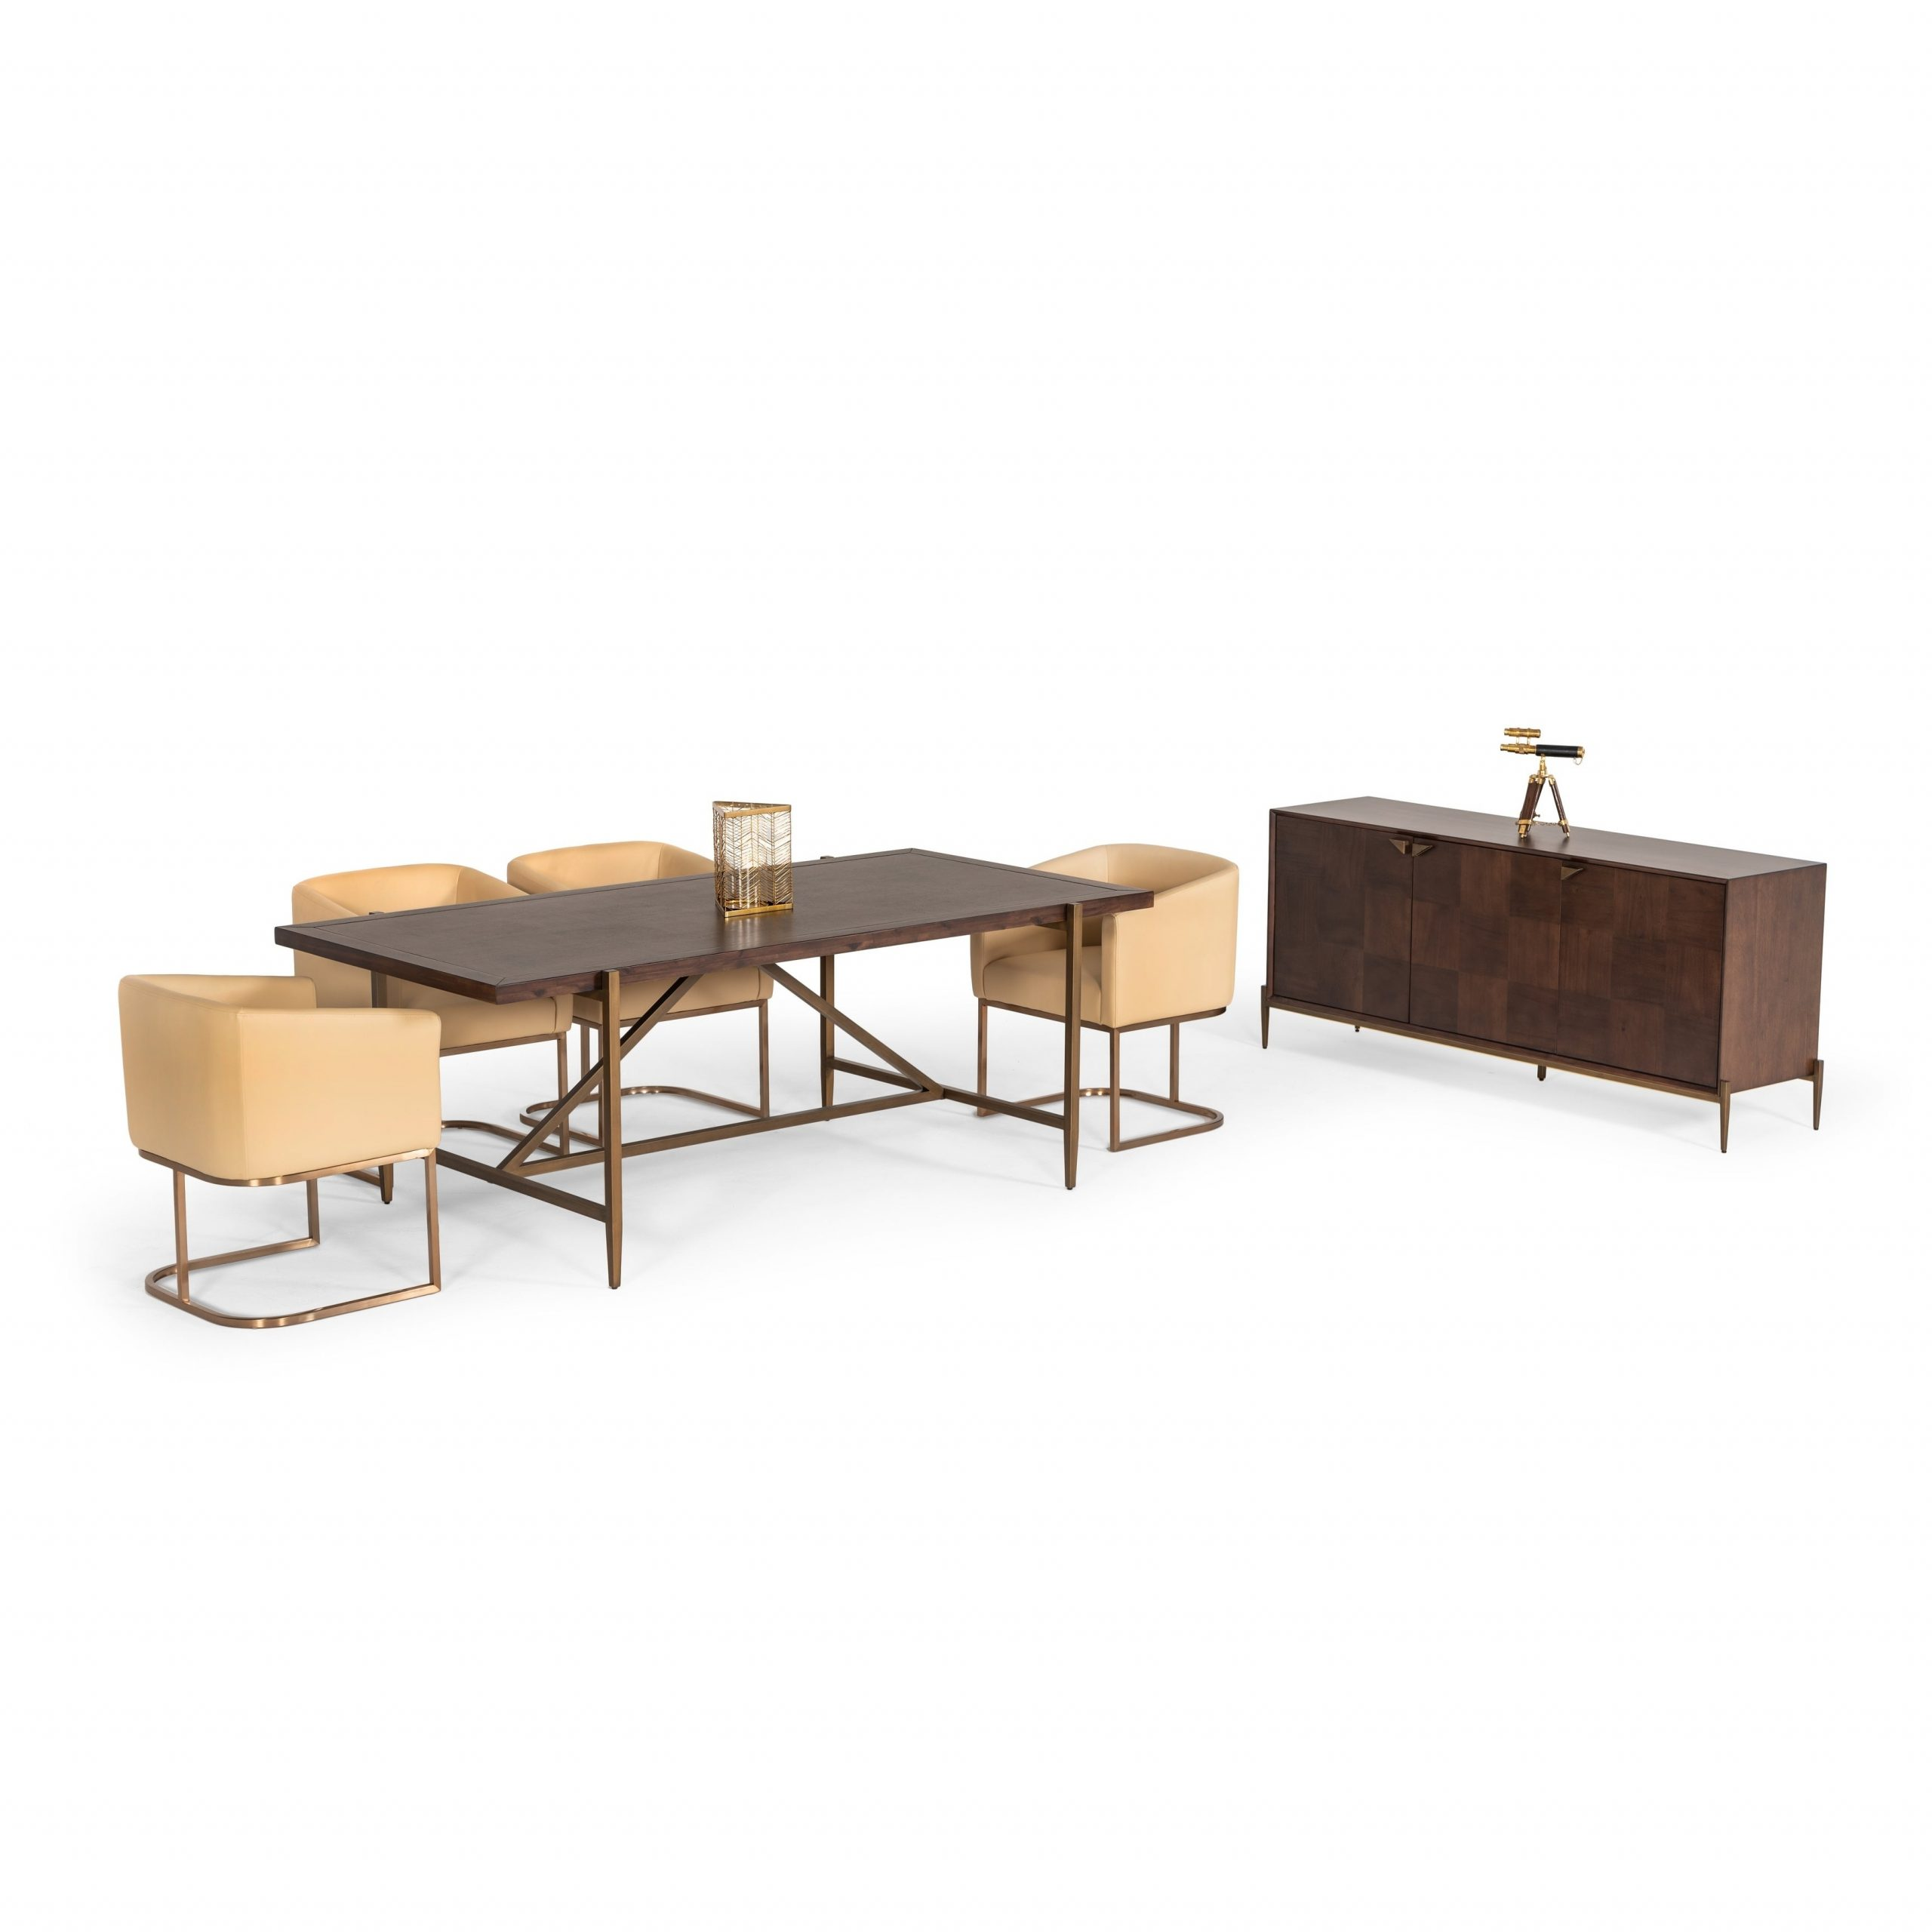 Salvaged Black Shayne Drop Leaf Kitchen Tables Intended For Most Popular Modrest Shane Modern Acacia & Brass Dining Table (View 21 of 25)